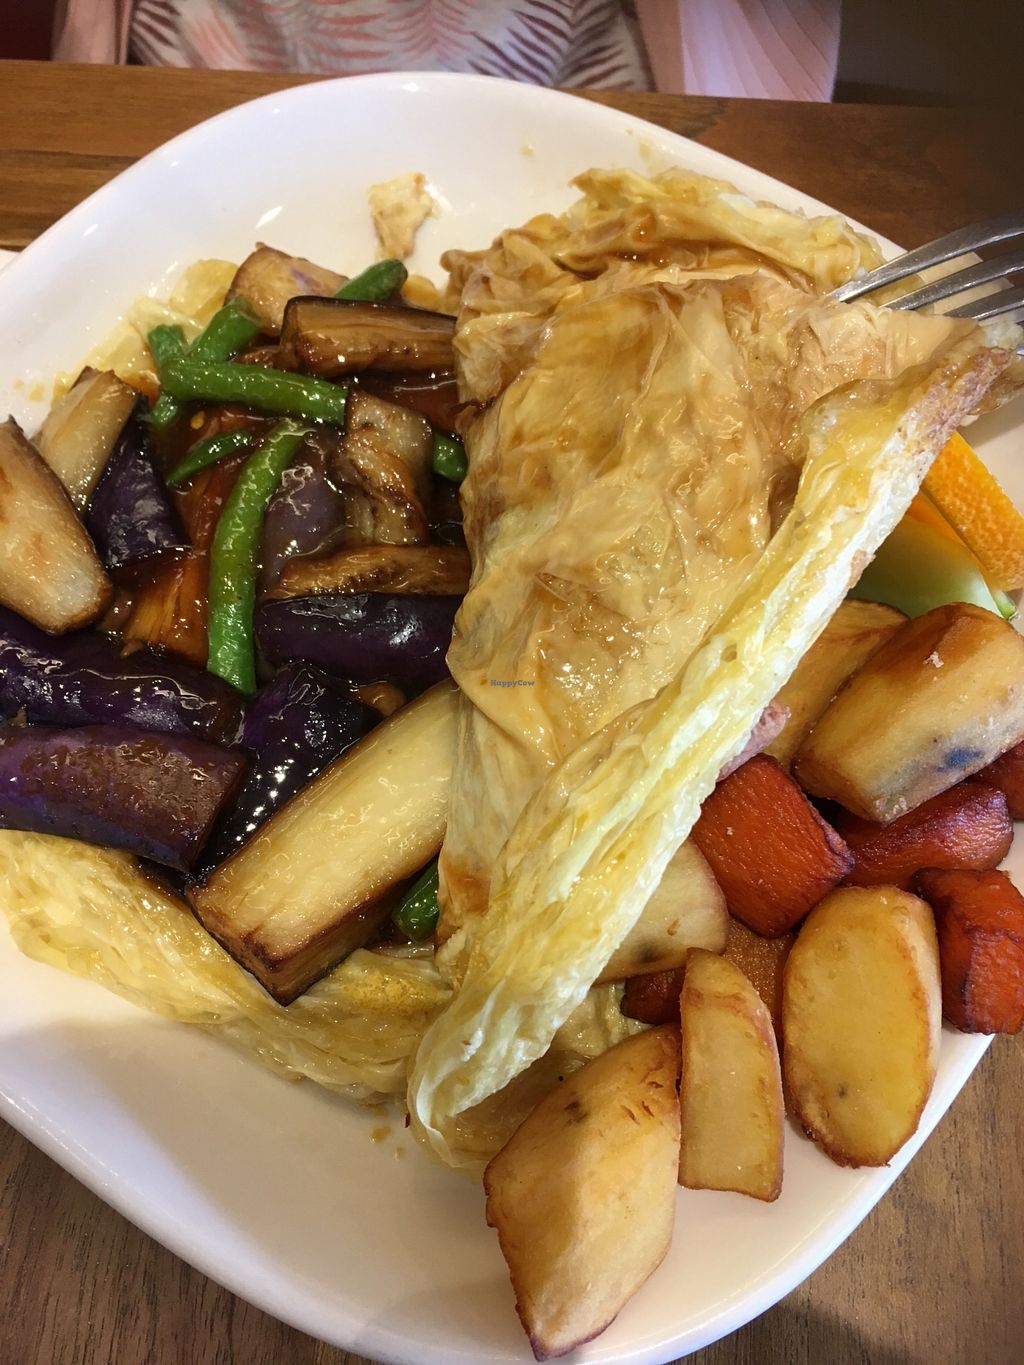 """Photo of Padmanadi  by <a href=""""/members/profile/Veganup"""" class=""""title__title"""">Veganup</a> <br/> Egan eggplant omelette (brunch menu) <br/> July 28, 2018  - <a href='/contact/abuse/image/1240/439198'>Report</a>"""